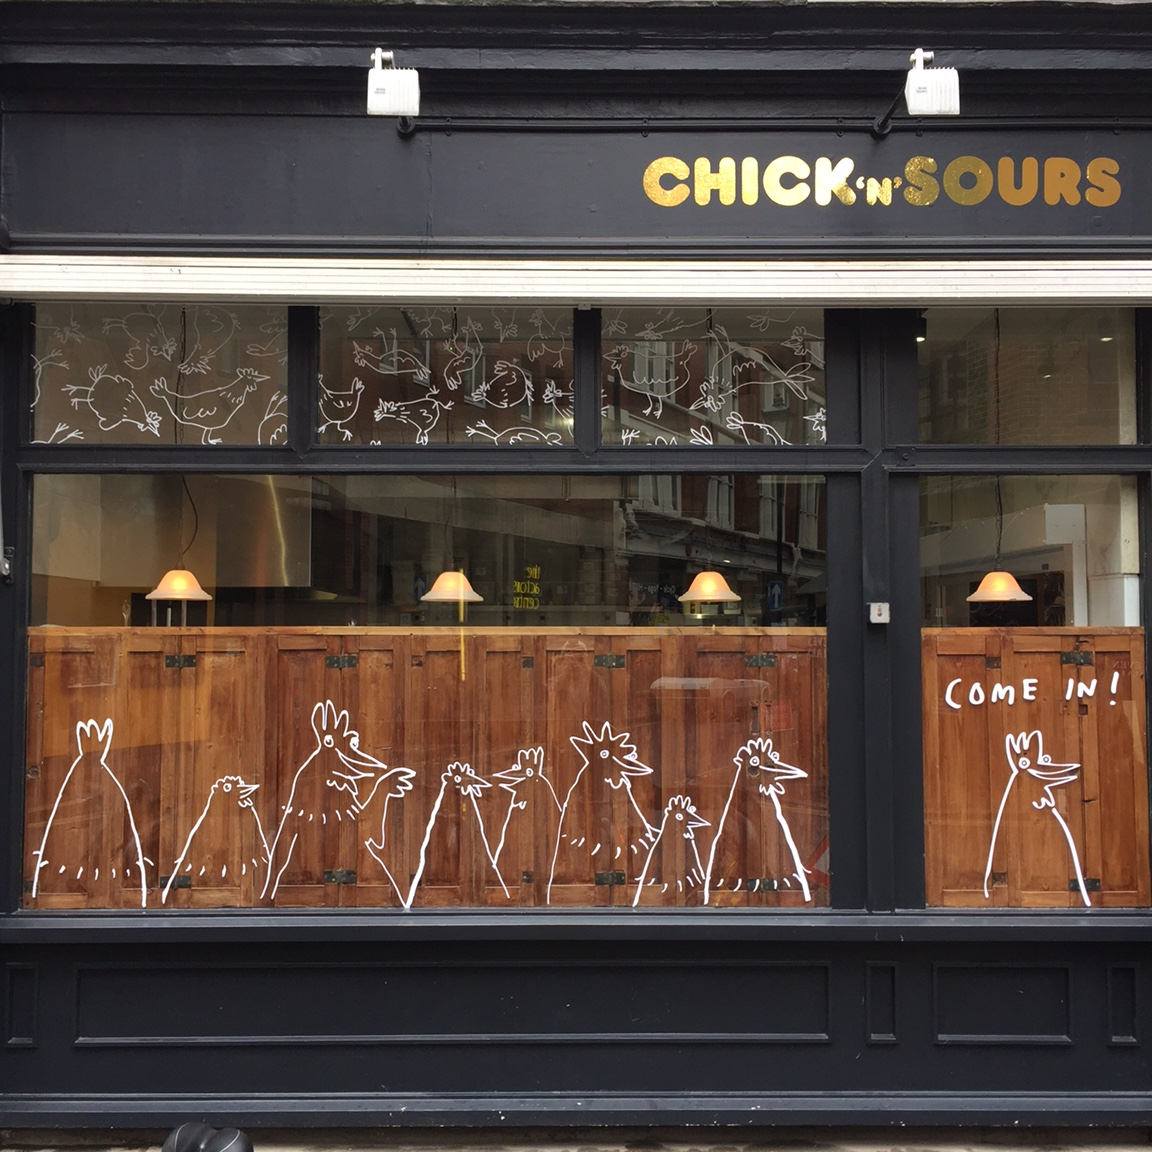 Illustrated chickens on the window of restaurant